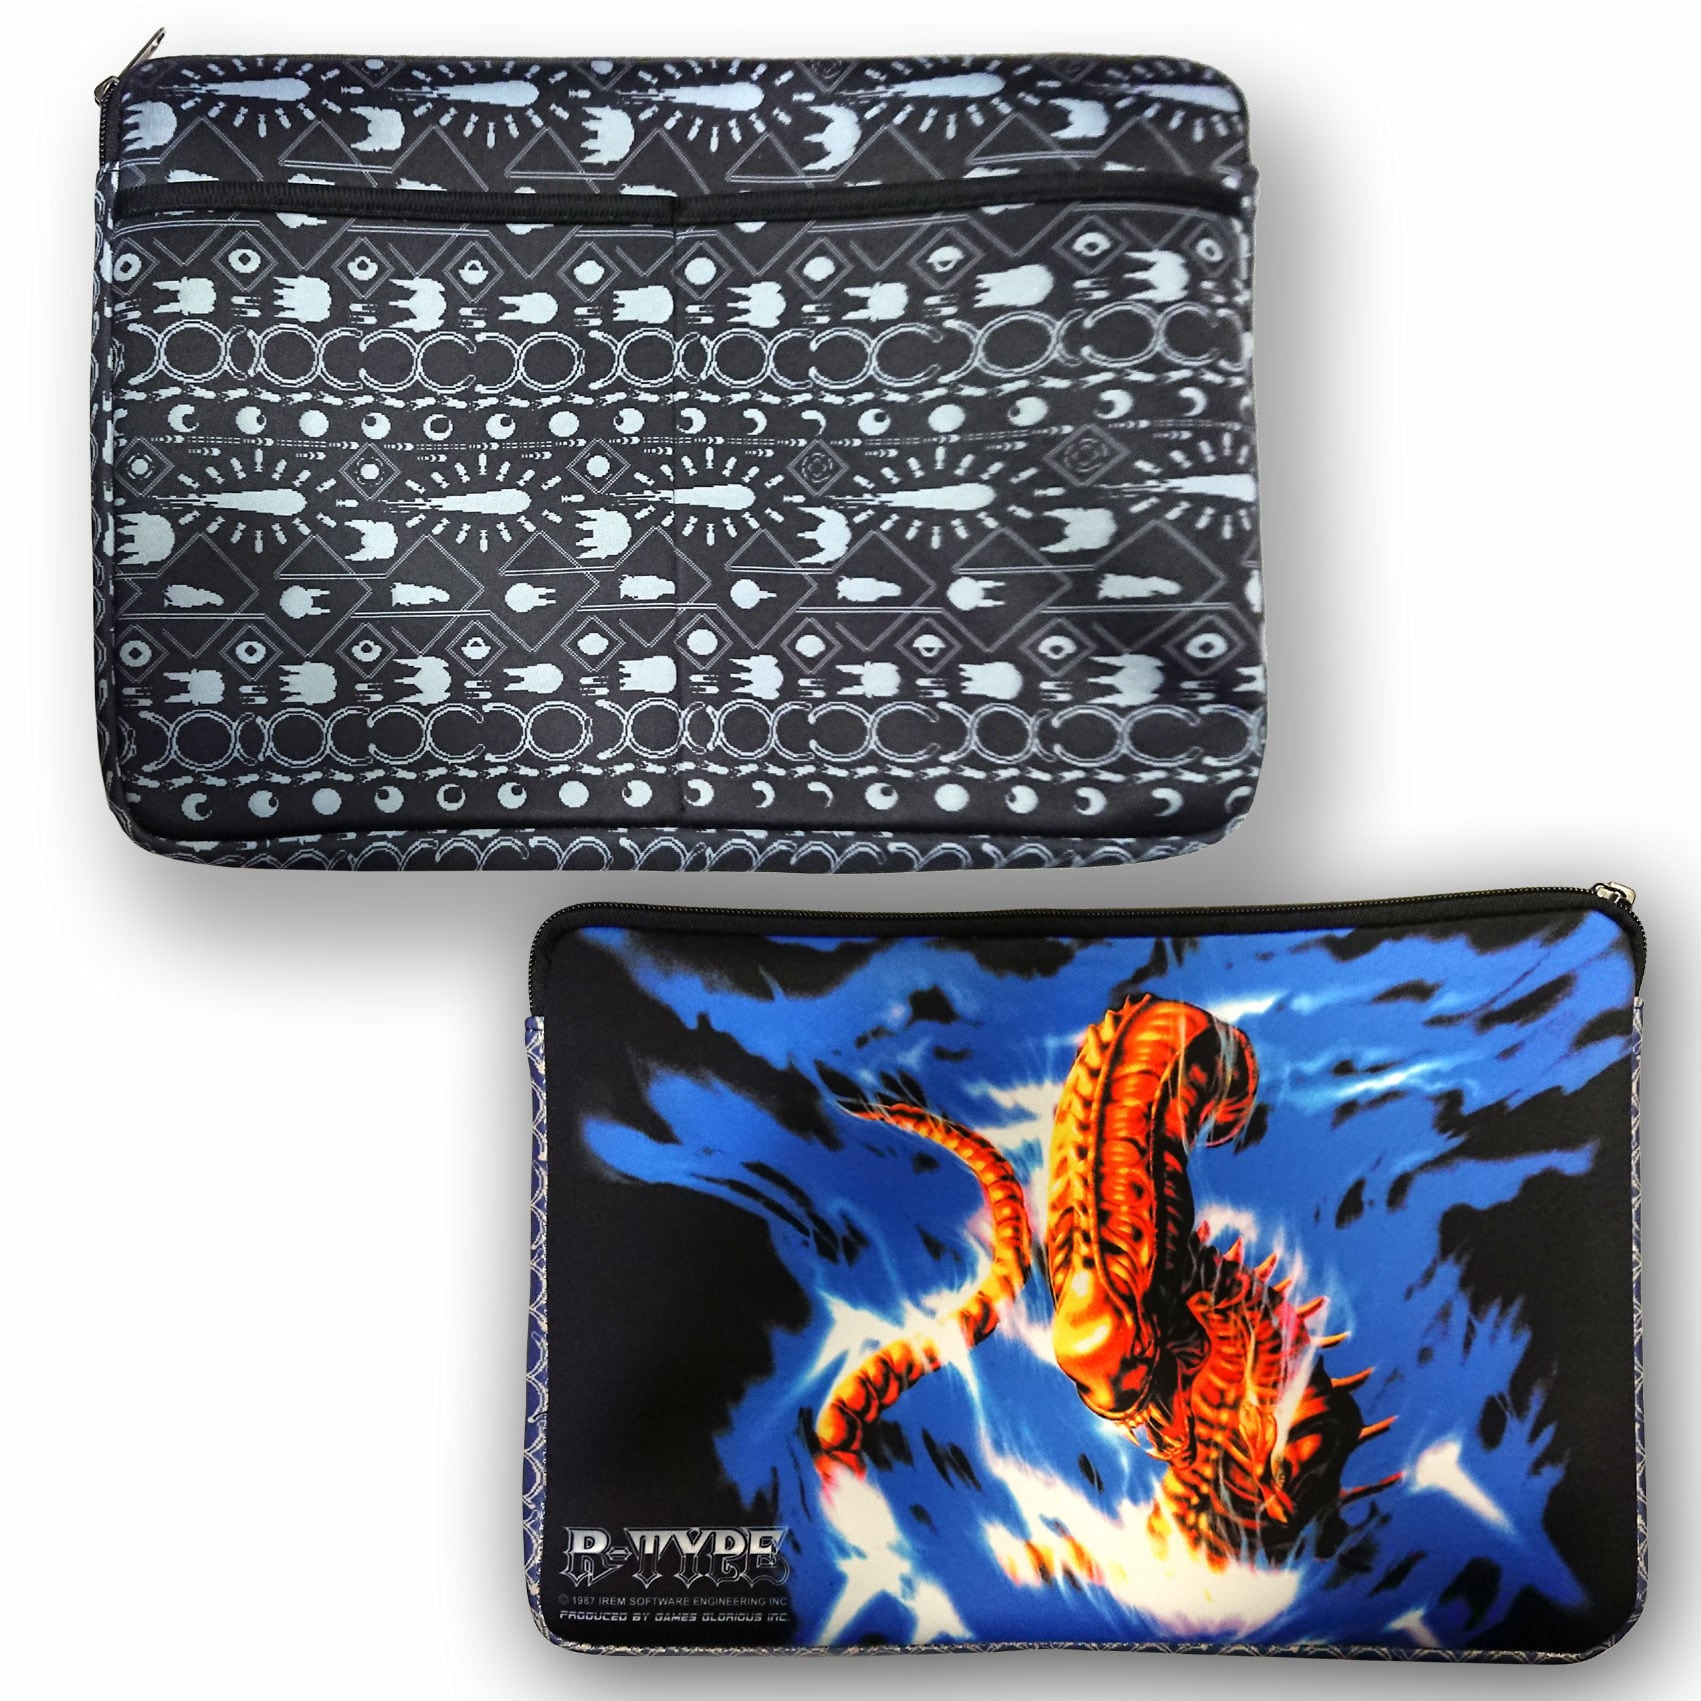 R-TYPE 「R-9 Earth-Ethnic PC Clutch Bag」 / GAMES GLORIOUS